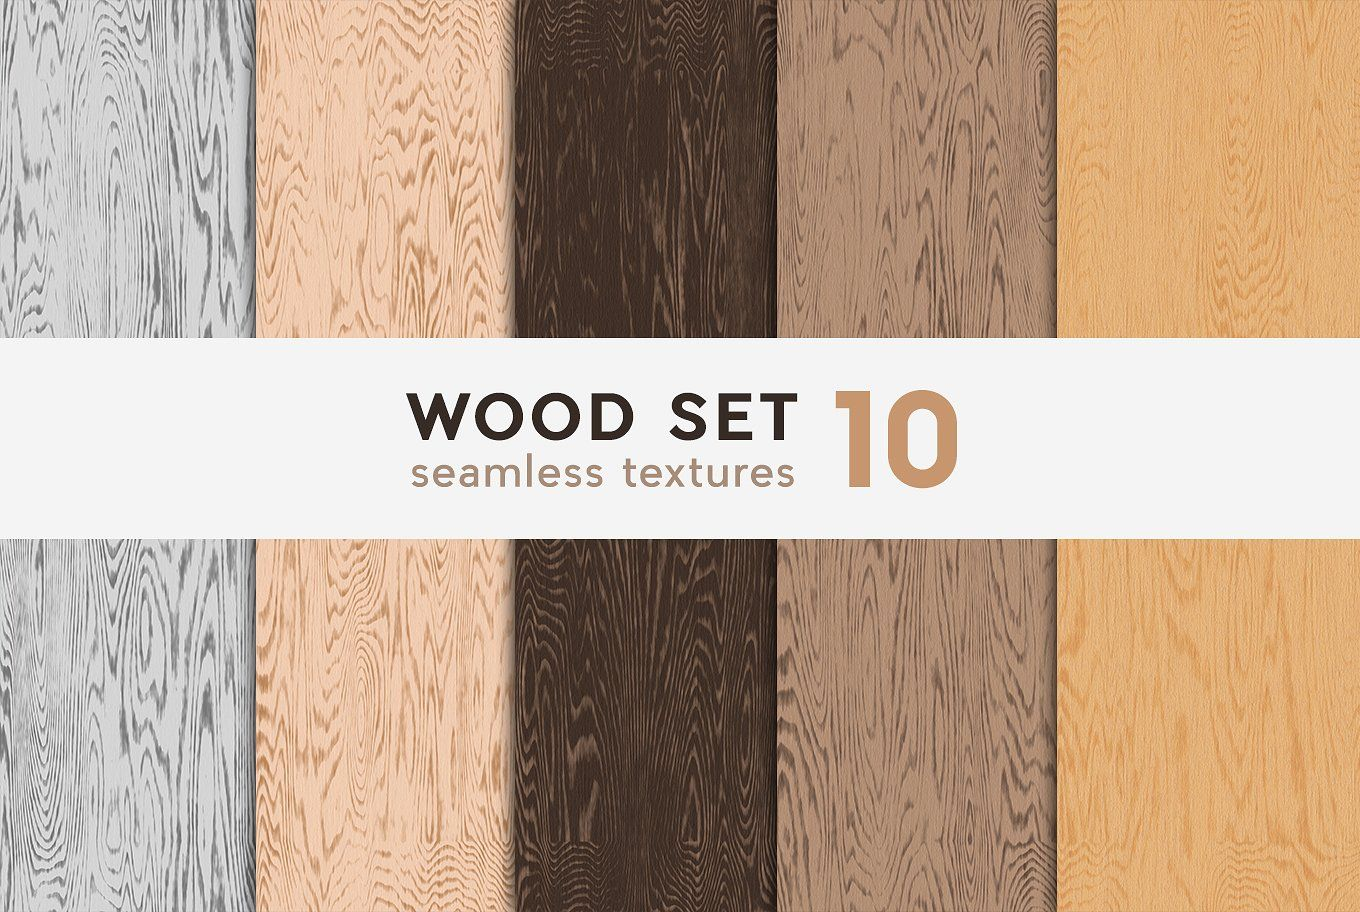 Wood Textures Set 10 Cheap Flooring Parquet Flooring Flooring Materials